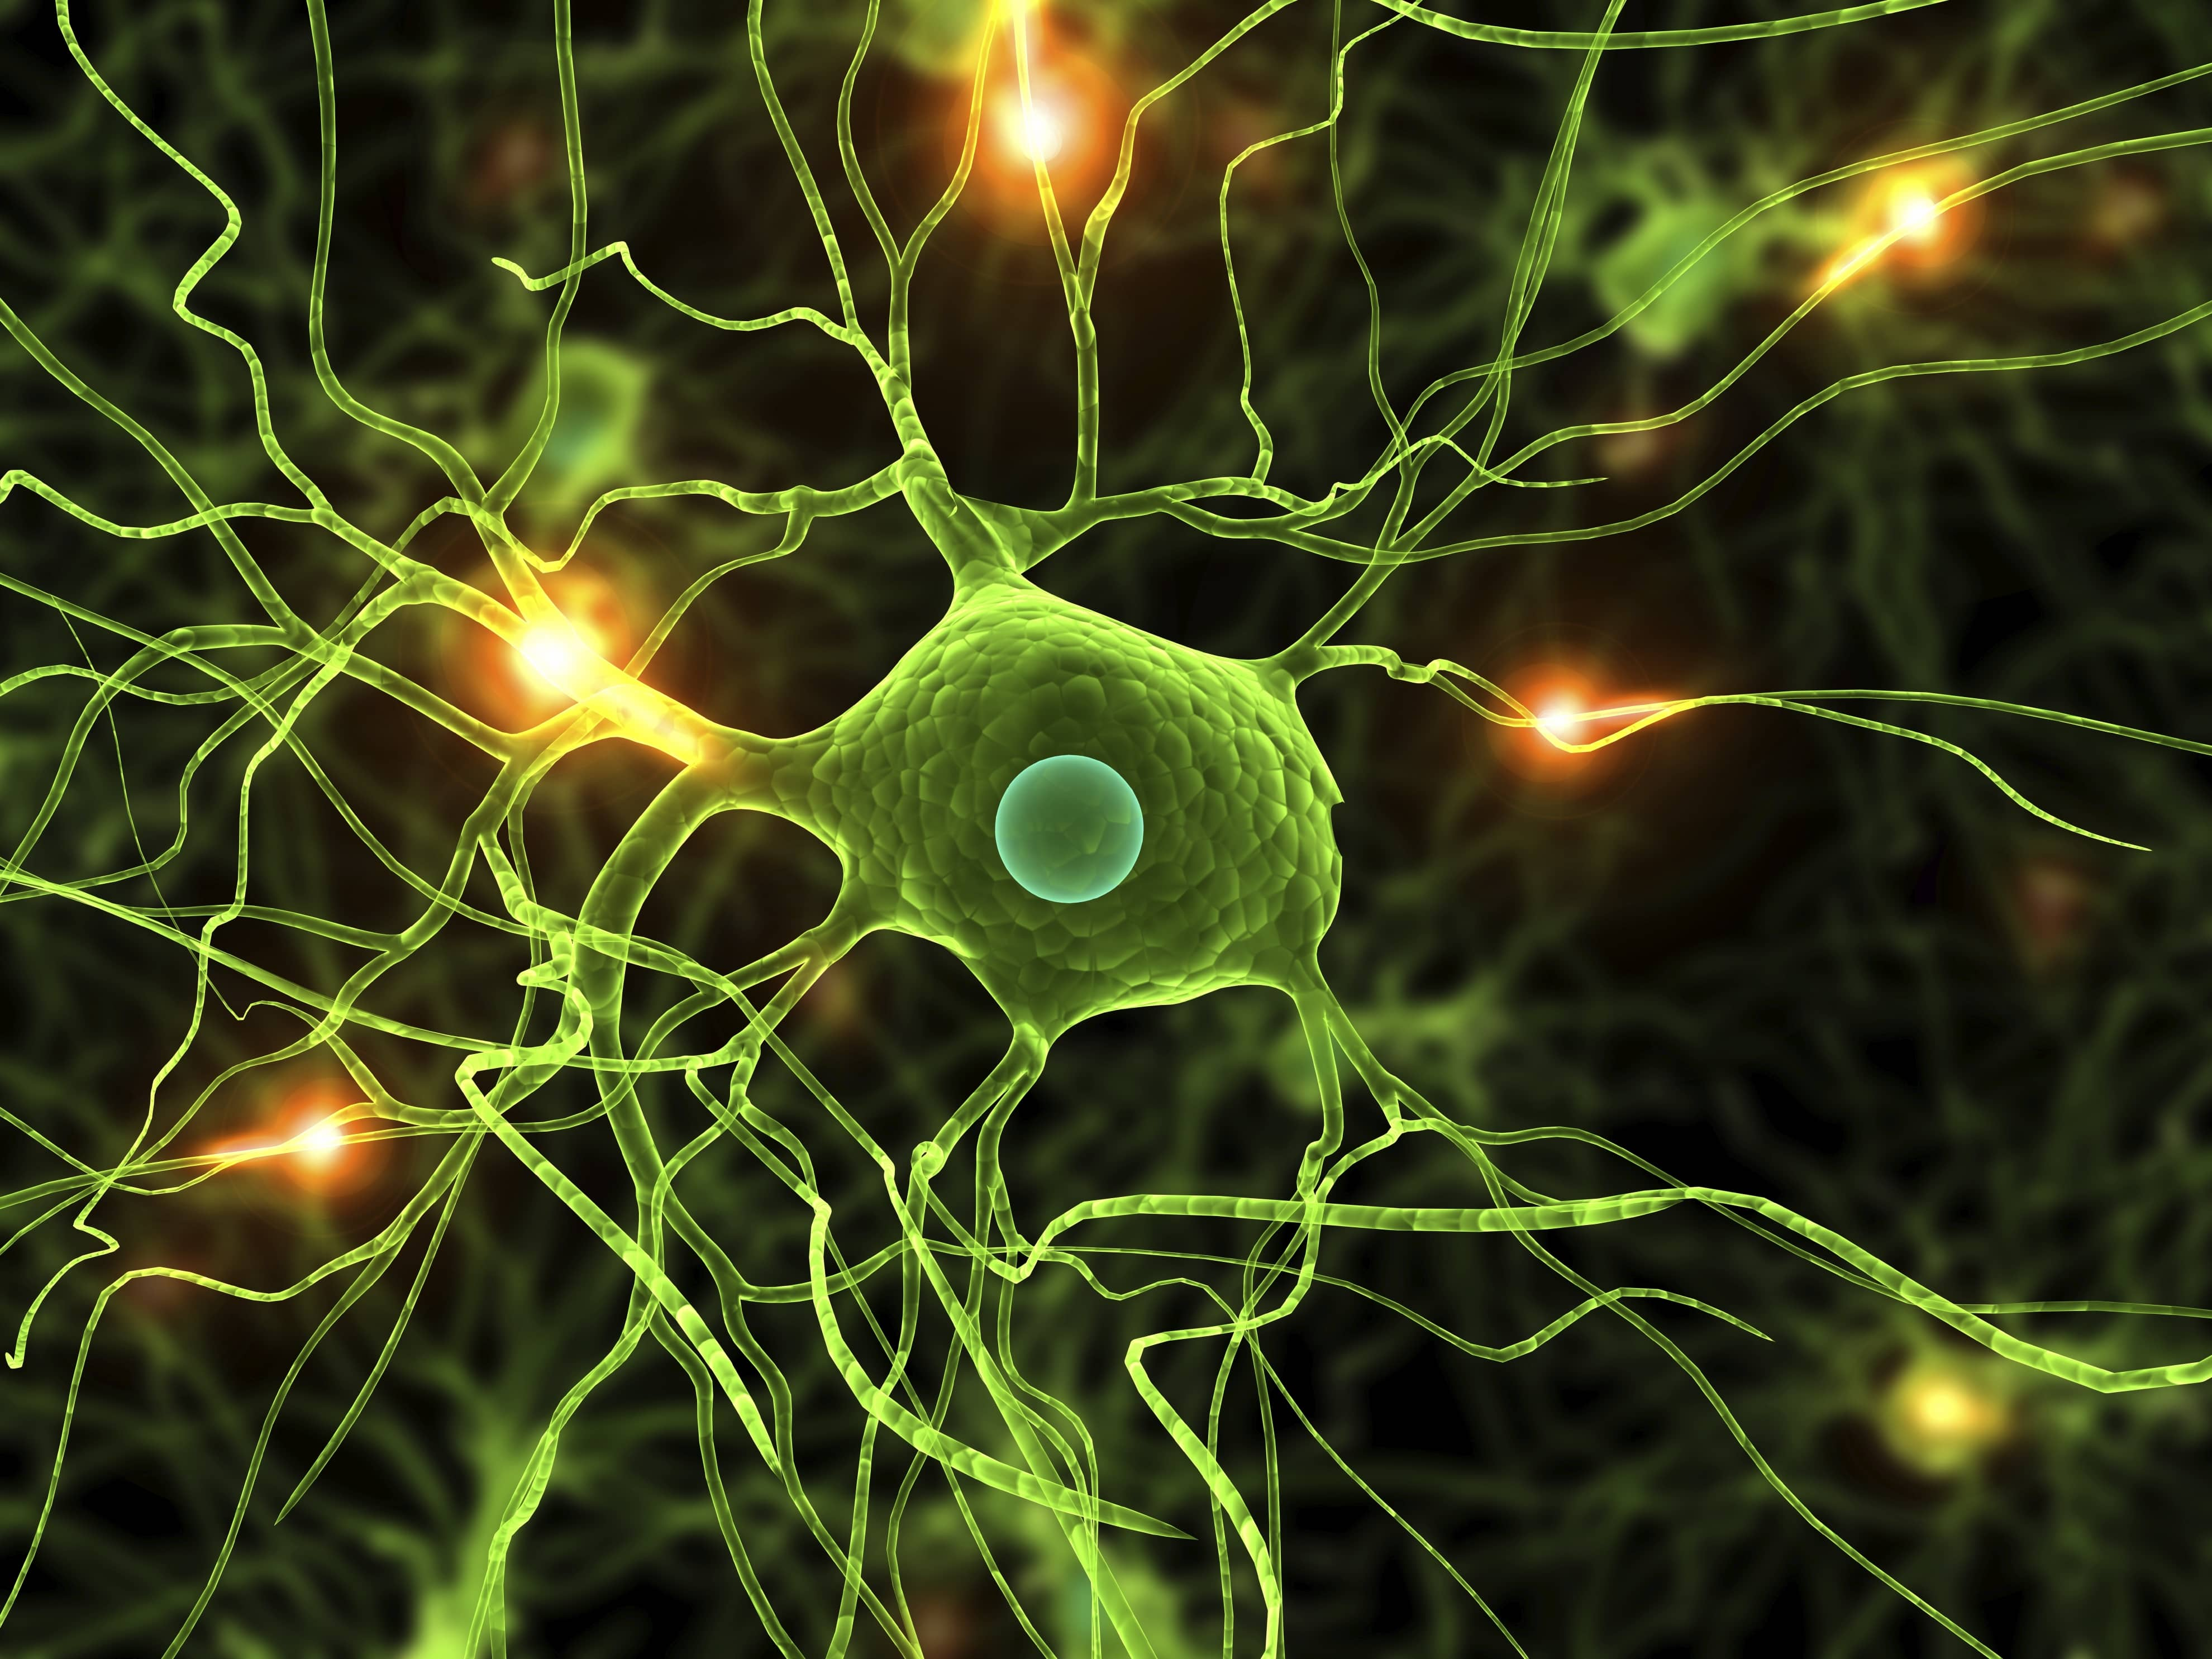 The neural pathways of the brain are a lot like our highways